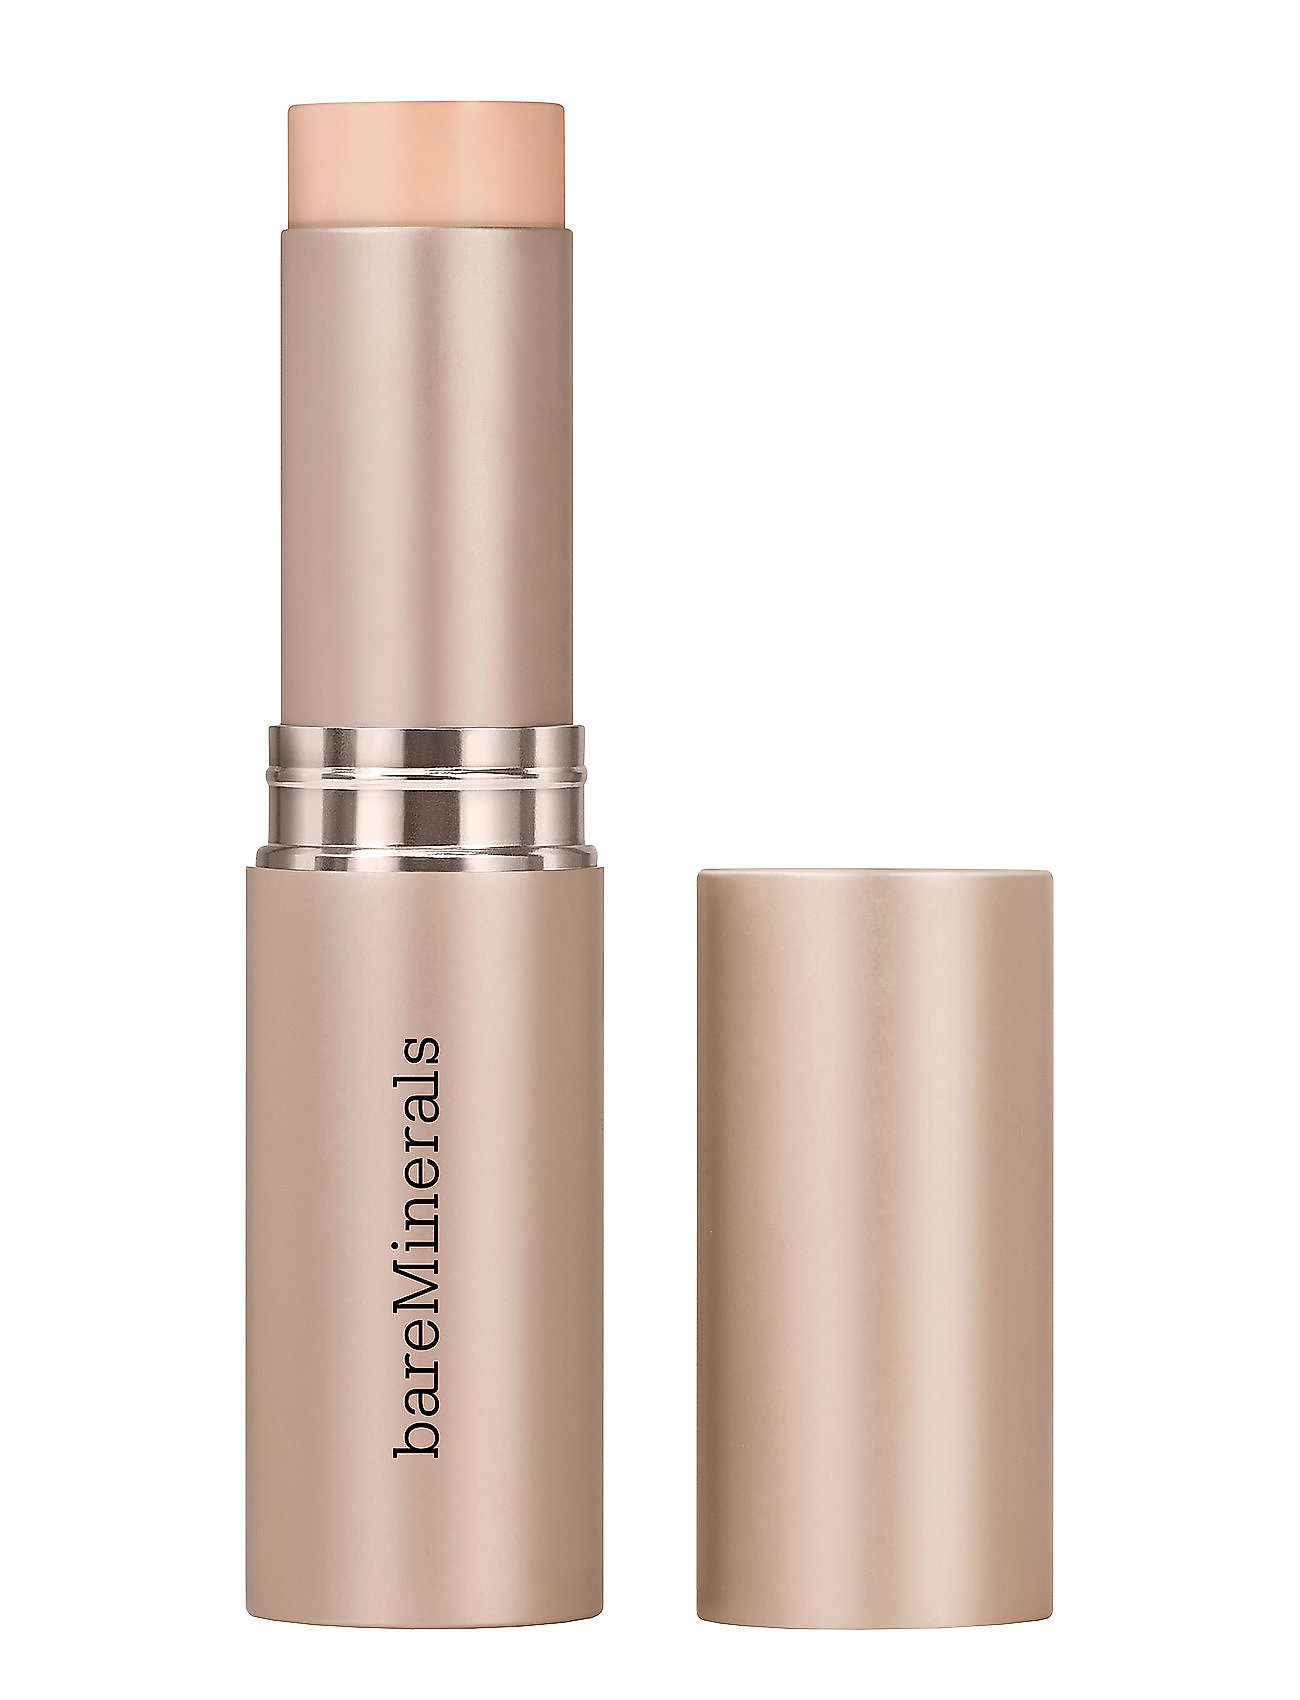 Image of Complexion Rescue Hydrating Foundation Stick Spf 25 Foundation Makeup BareMinerals (3250586881)